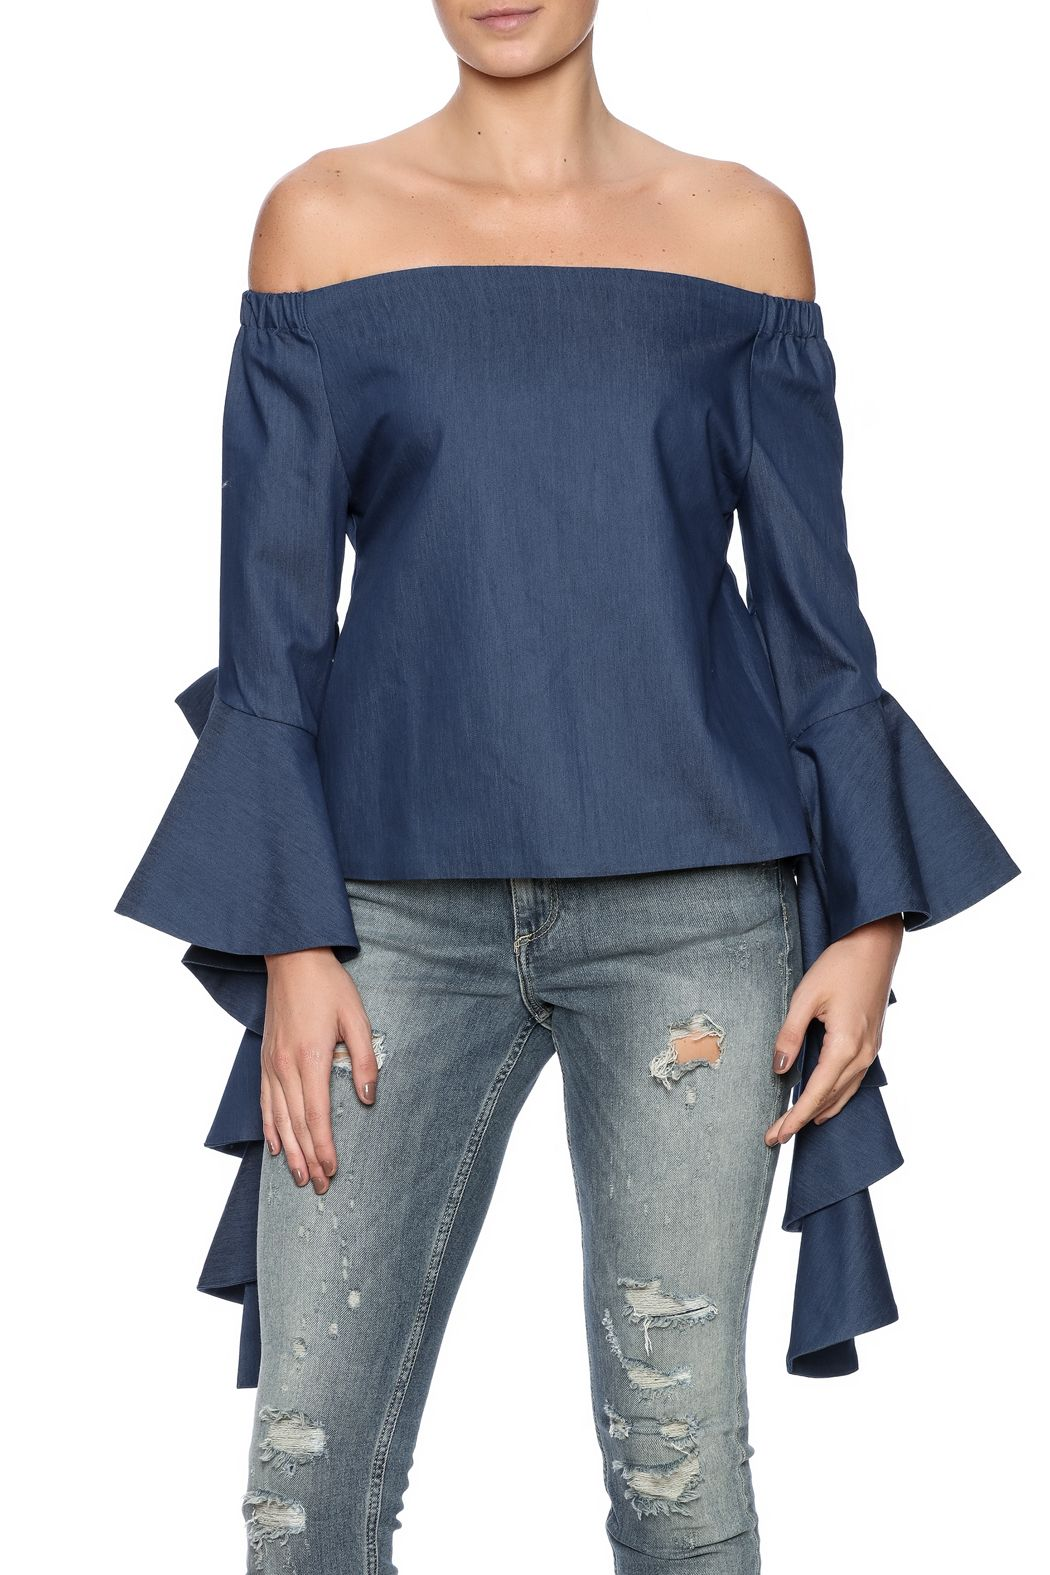 7ada0c715 Blue jean denim off-the-shoulder top with ruffle sleeve accents and an  elastic bust. Ruffle Denim Top by Gracia. Clothing - Tops - Blouses & Shirts  Clothing ...